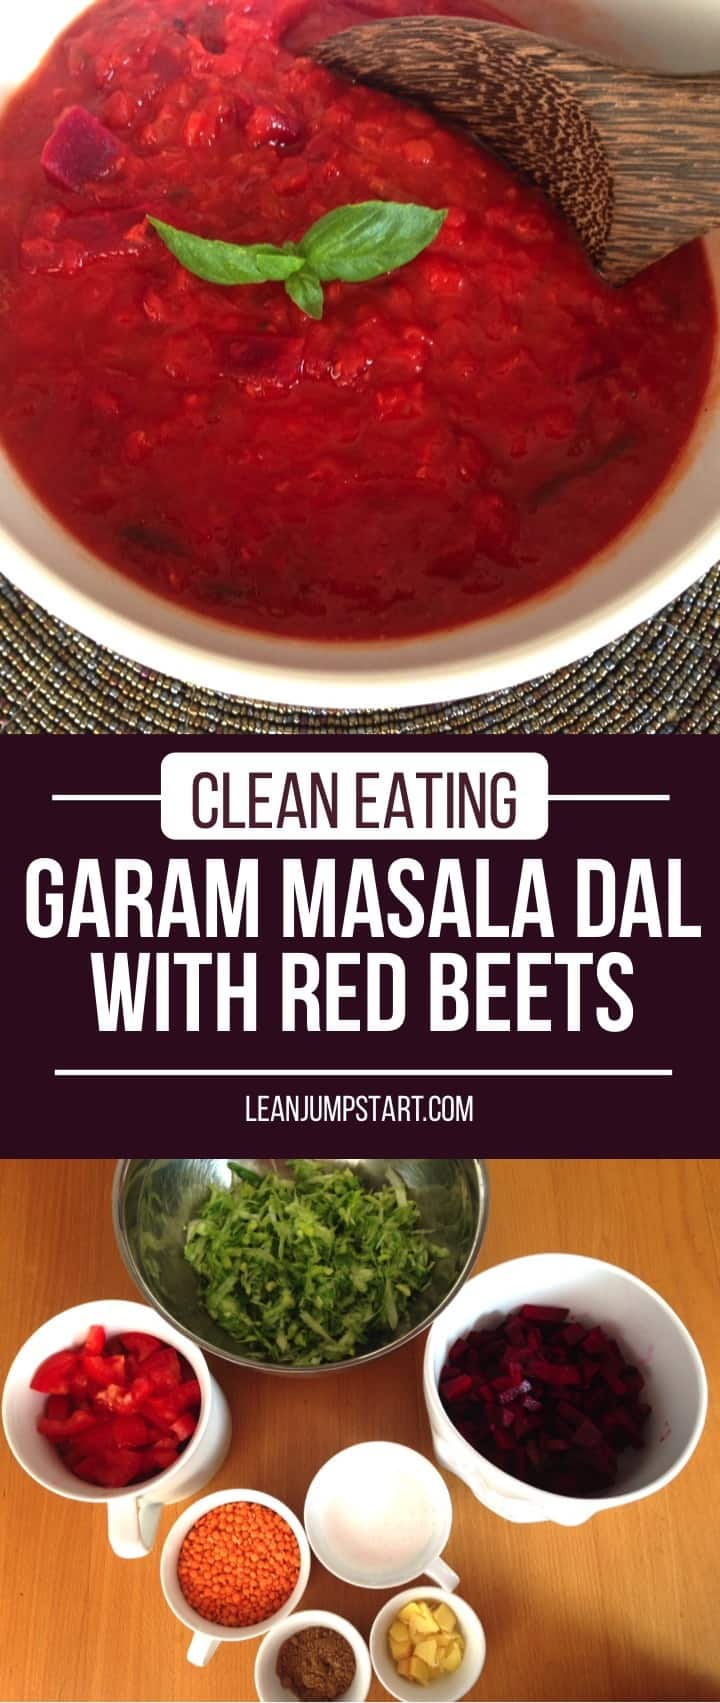 Garam masala dal with red beets: Easy and spicy Indian beetroot red lentil curry #dal #garammasala #beets #Indianrecipe